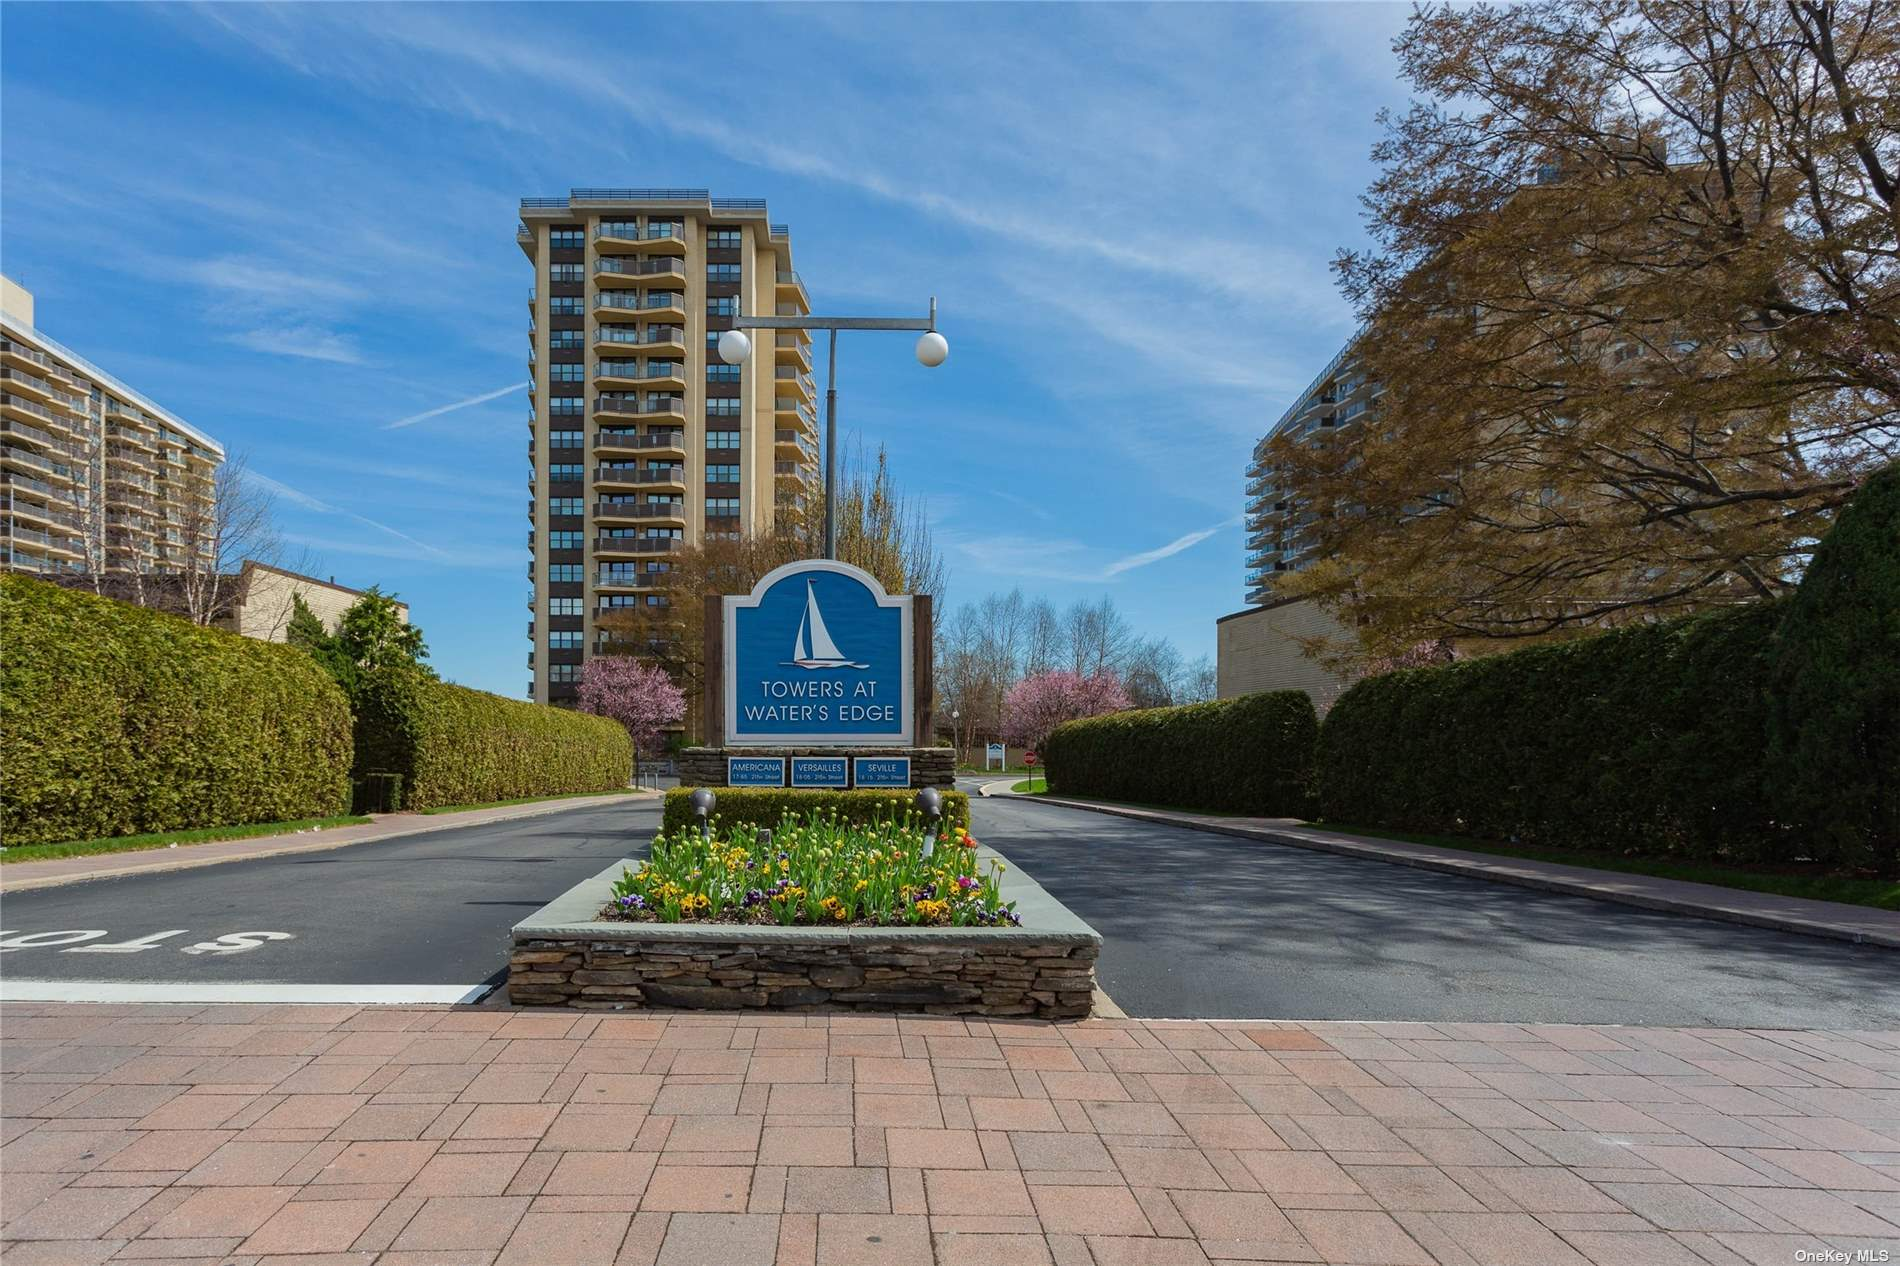 Luxury luxury! Beautifully renovated 1 Bedroom in beautiful towers at waters edge! Priced perfectly to sell, this unit will not last! Beautiful water view, renovated kitchen and baths! 24 Hour door man, beautiful waterfront inground pool, tennis courts! Resort style living!